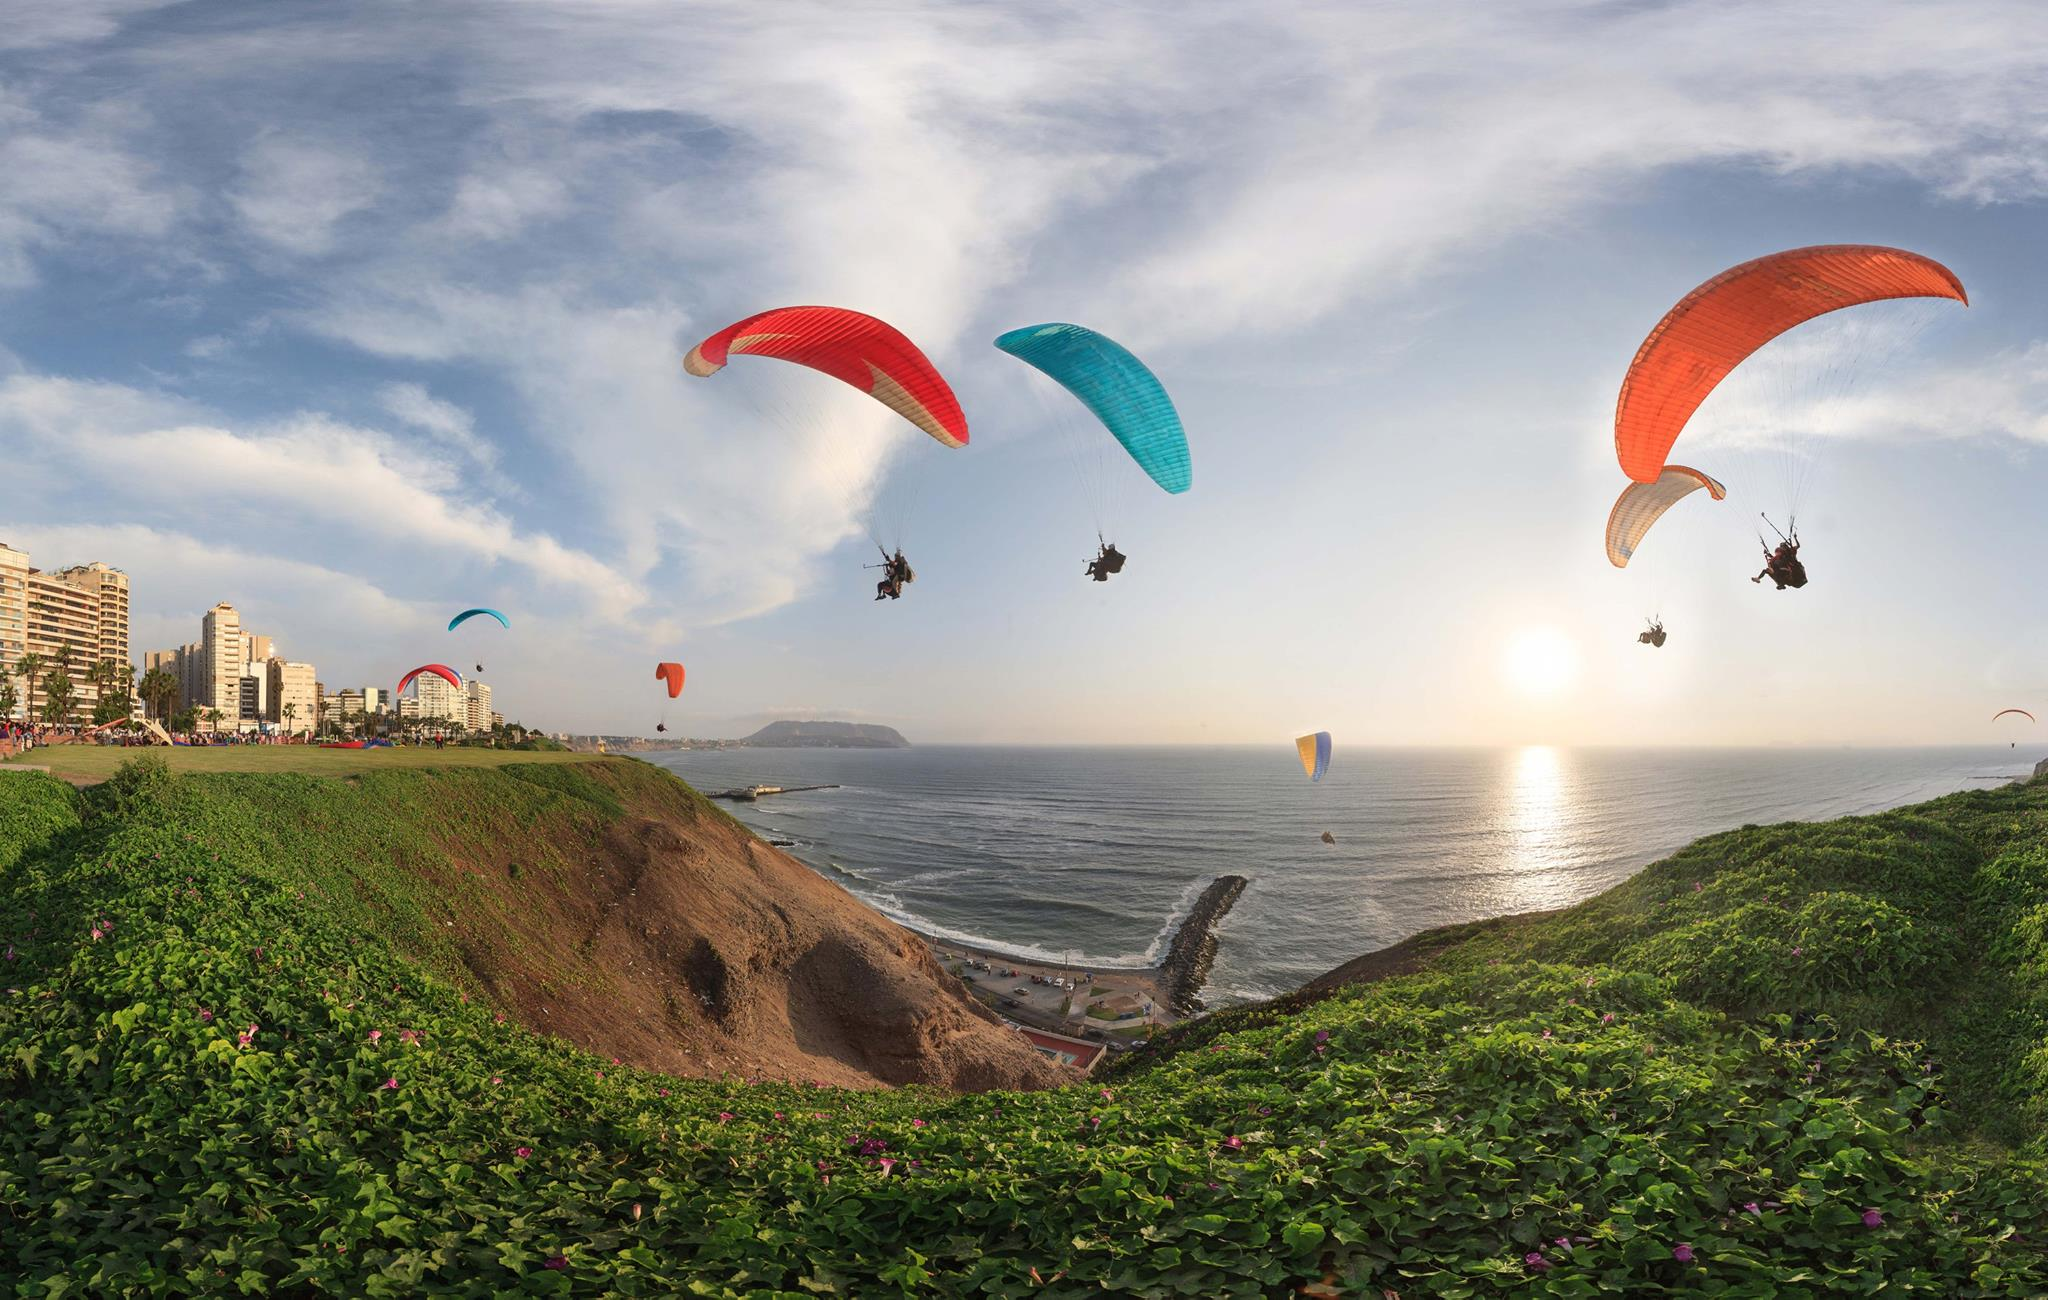 hanggliders over miraflores park and the ocean in lima on Peru holiday